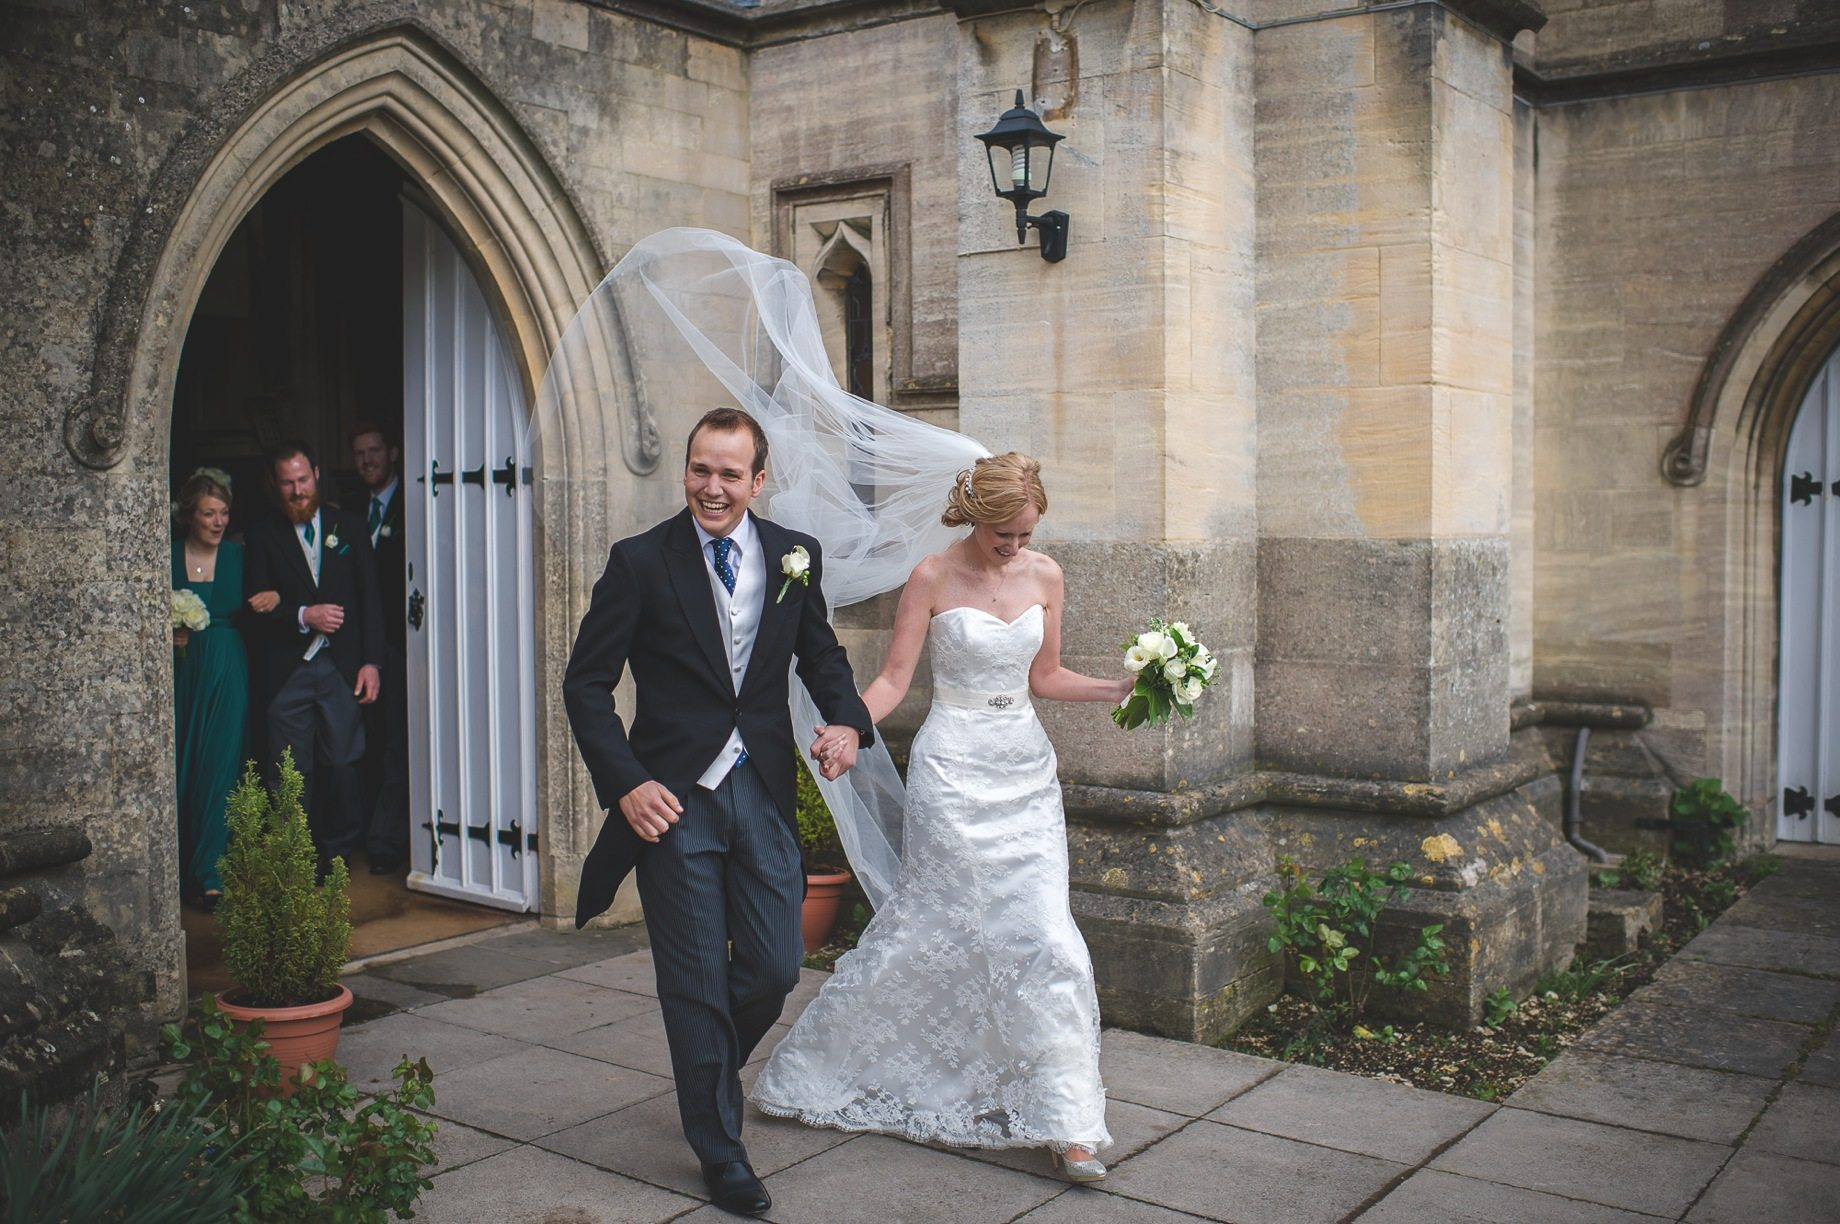 Gloucester wedding photography by Guy Collier - Chrissie and Will